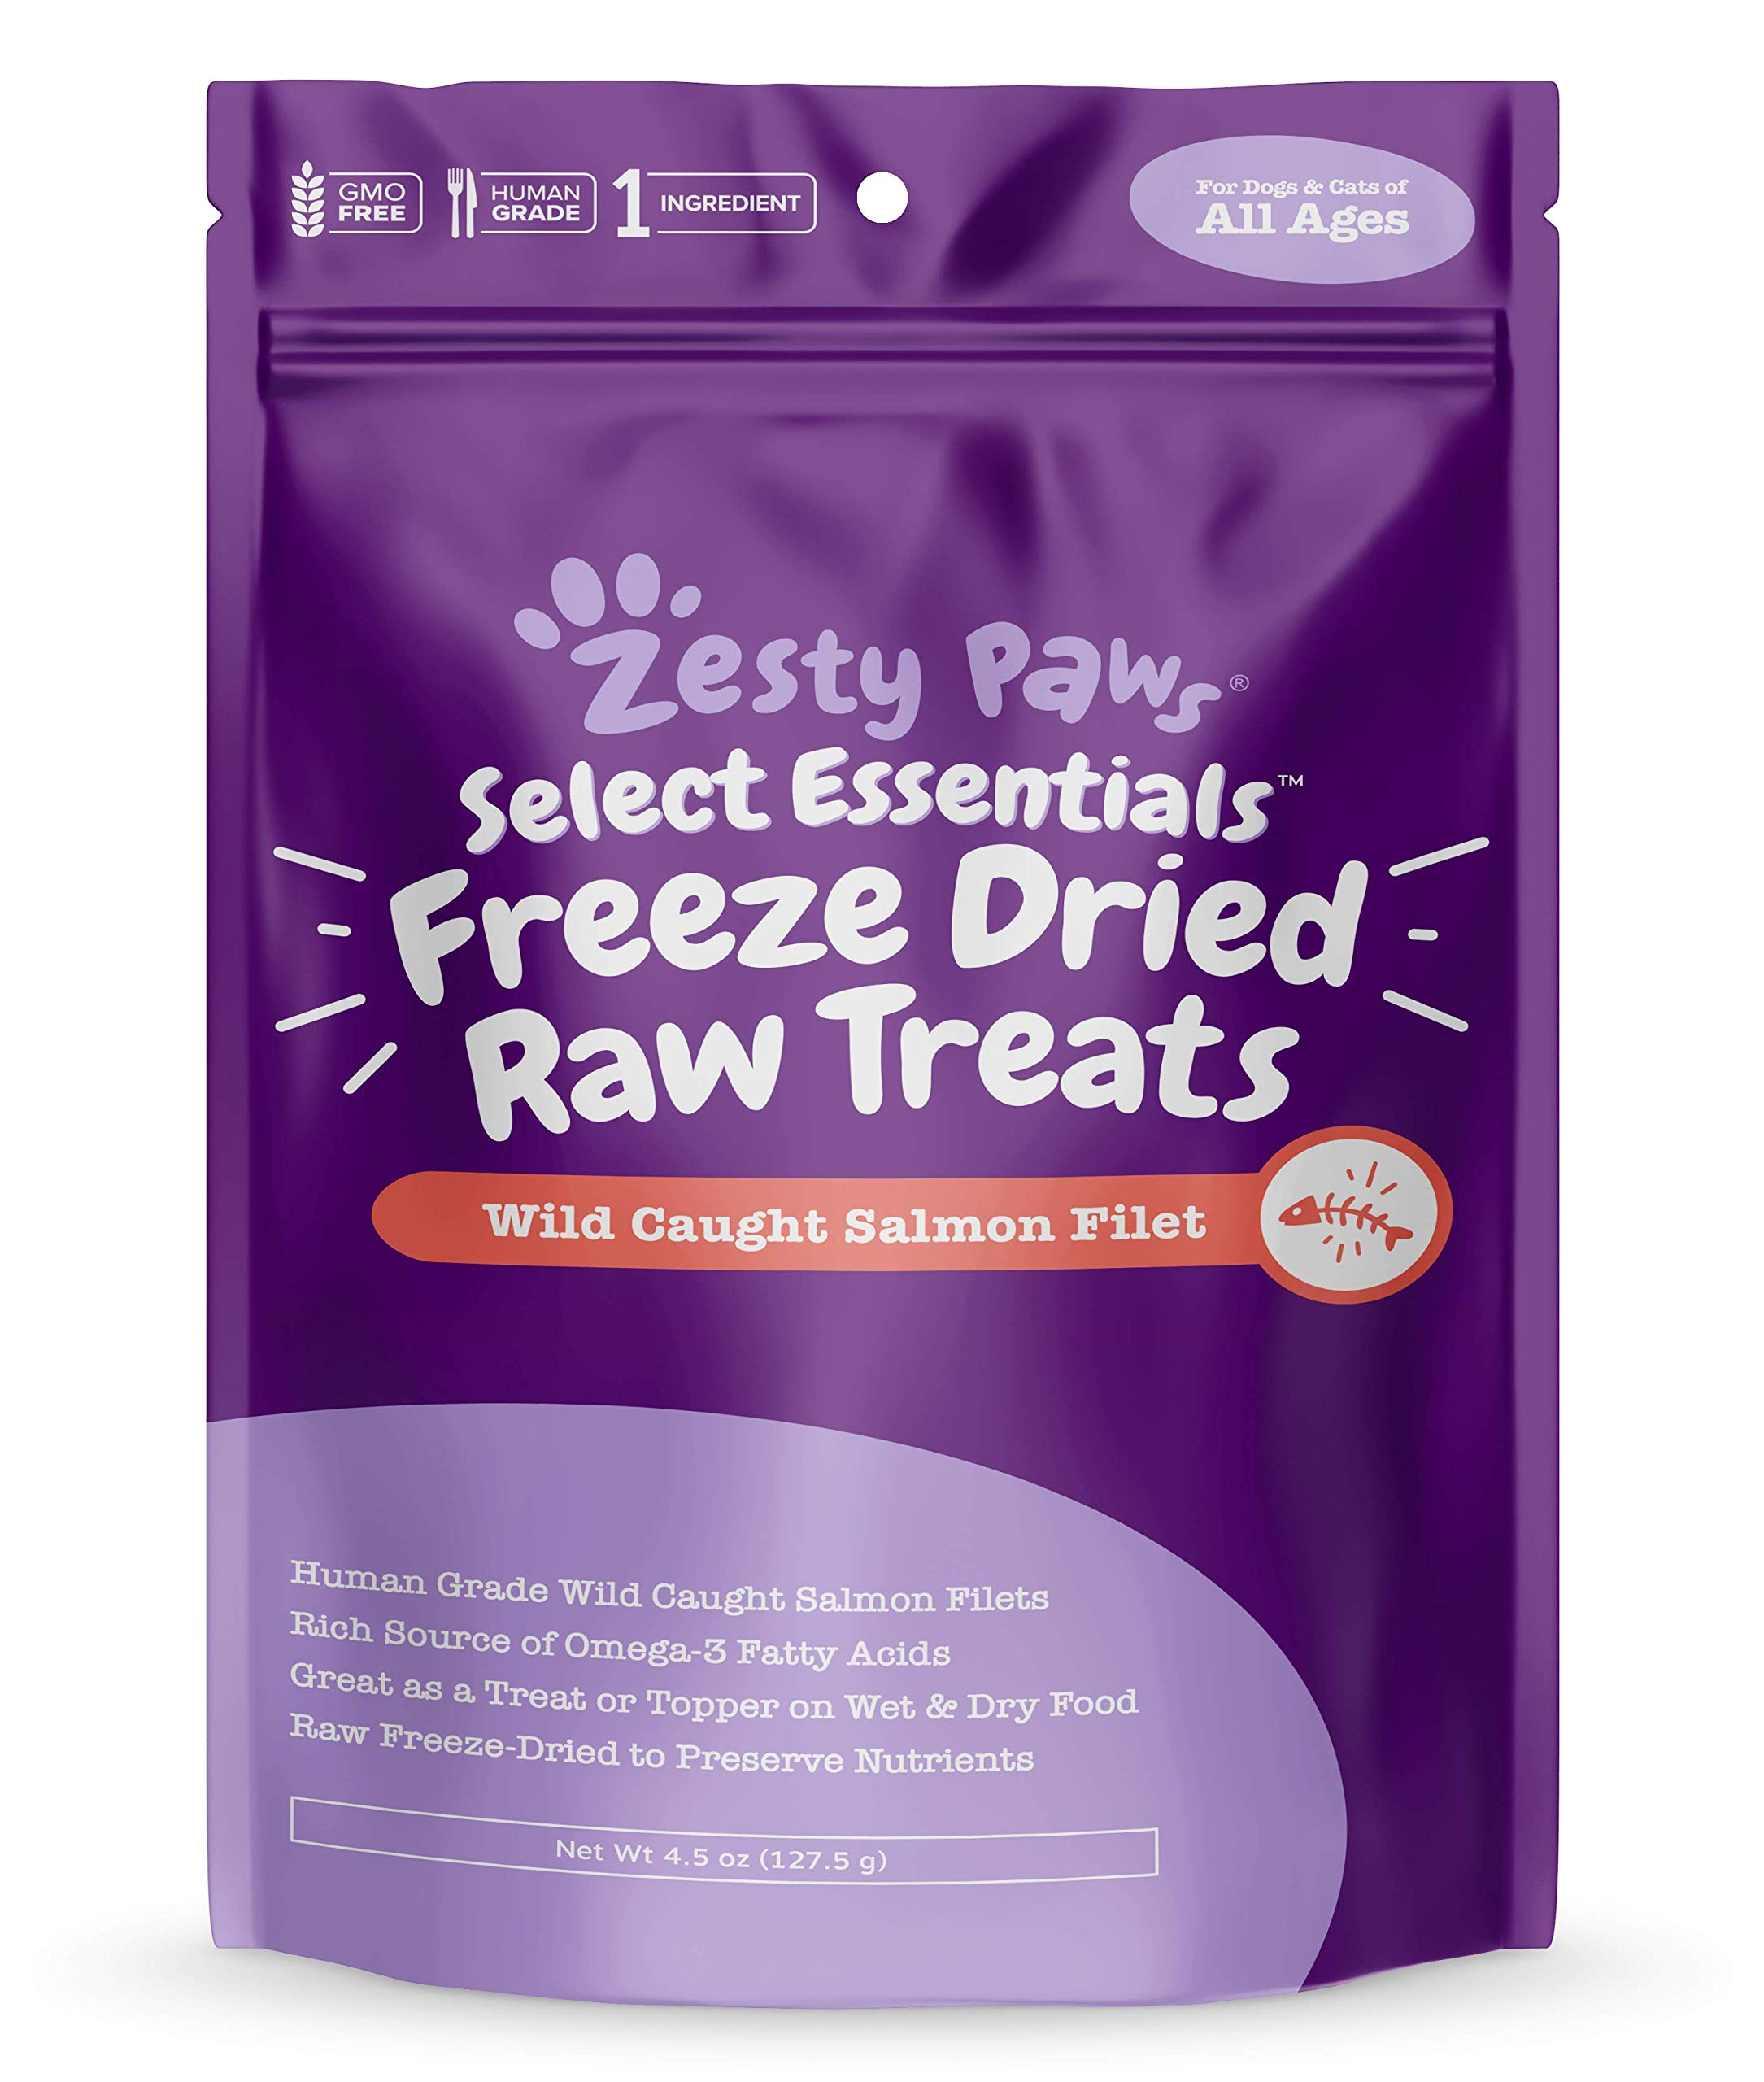 Freeze Dried Salmon Filet Treats for Dogs & Cats - with Pure Raw & Wild Caught Pacific Sockeye Salmon Fish - Omega 3 EPA + DHA Fatty Acids for Joint & Immune Support + Skin & Coat Health - 4.4 OZ by Zesty Paws